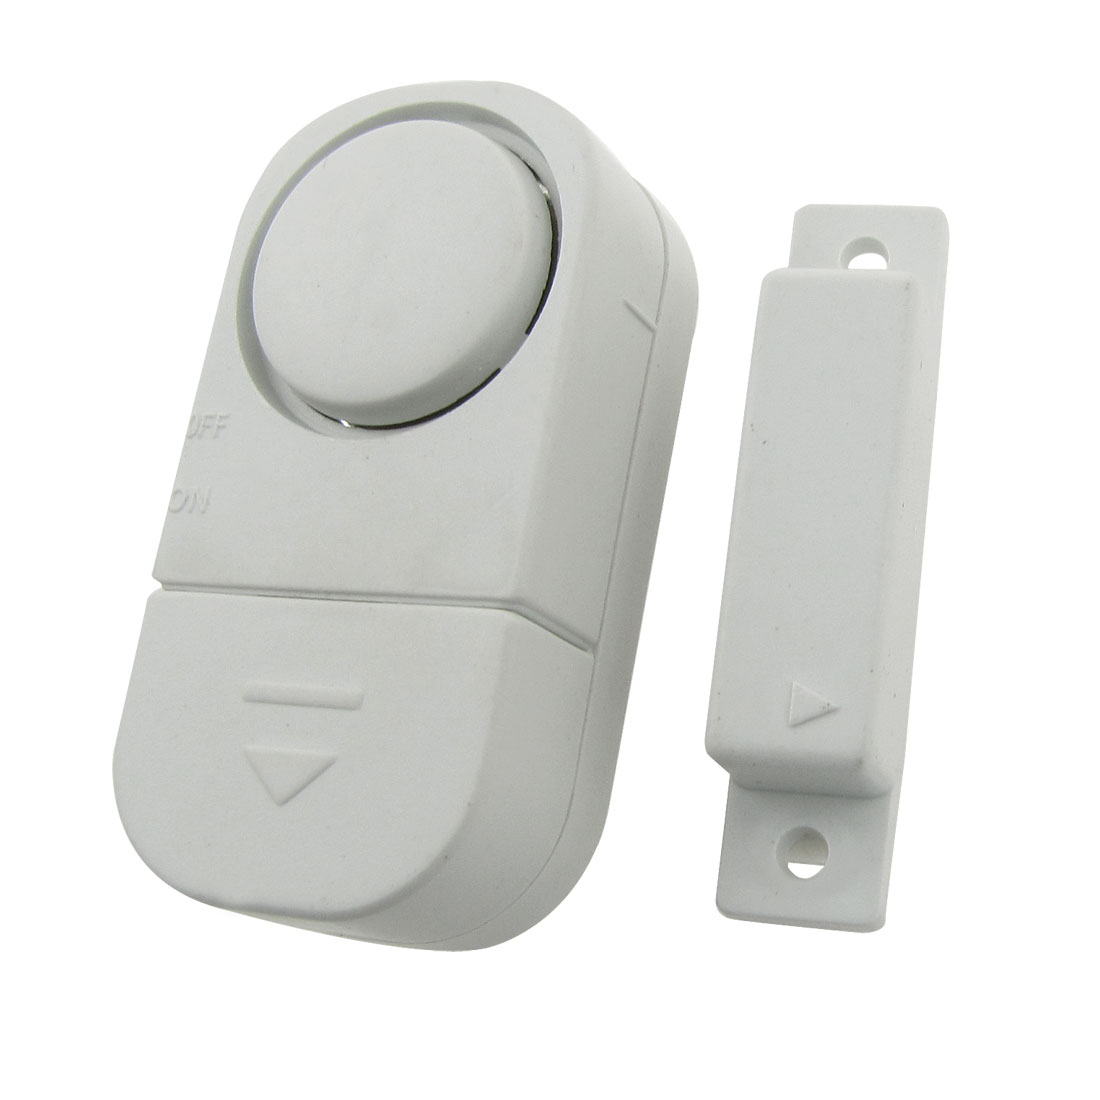 10mm Distance Home Security Window Burglar Entry Magnetic Sensor Alarm